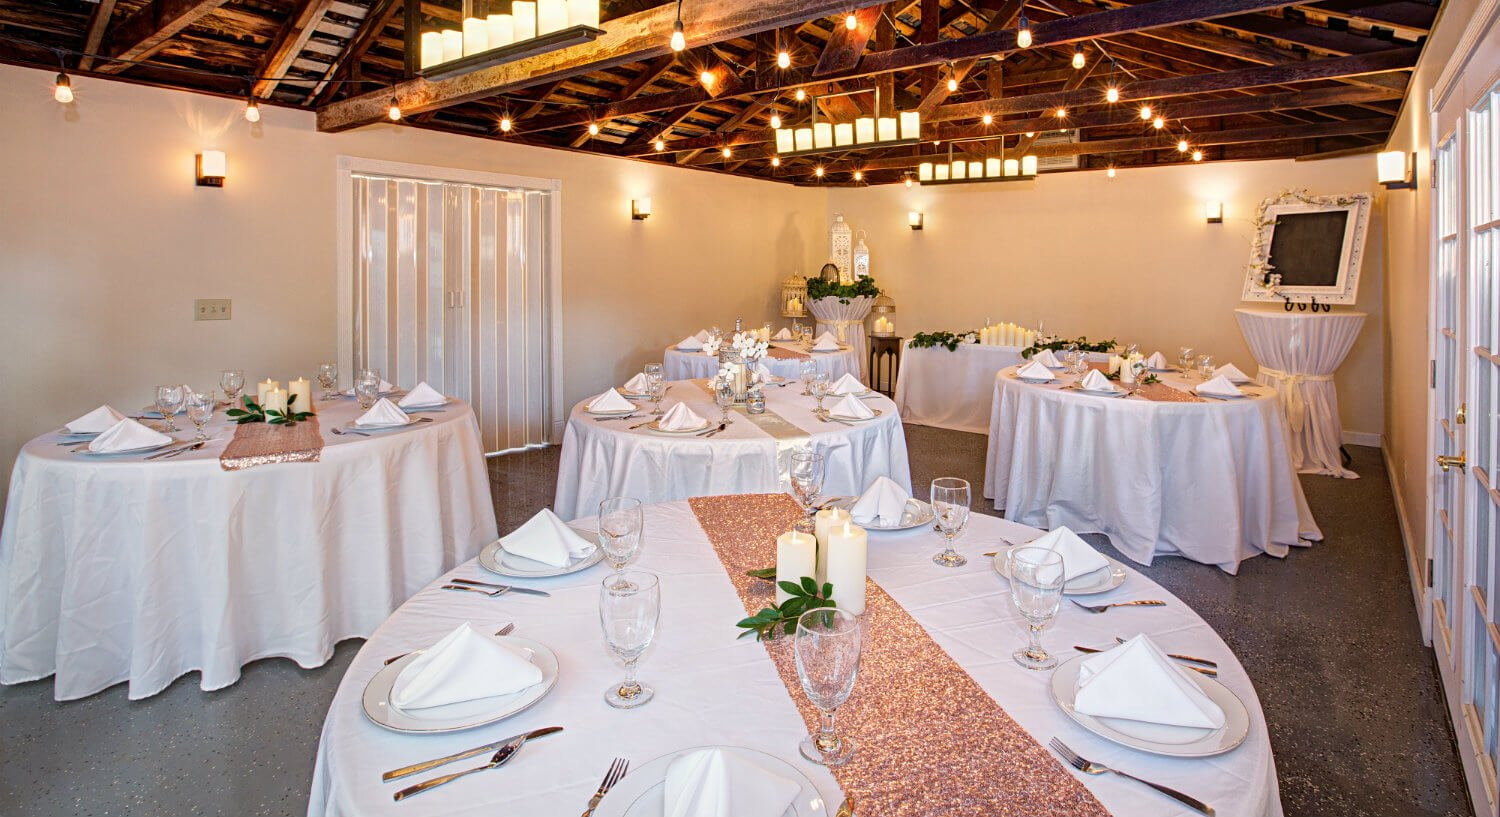 white round tables set for event with white linens, red runners, candles, in room with barn style peak ceiling, beige walls